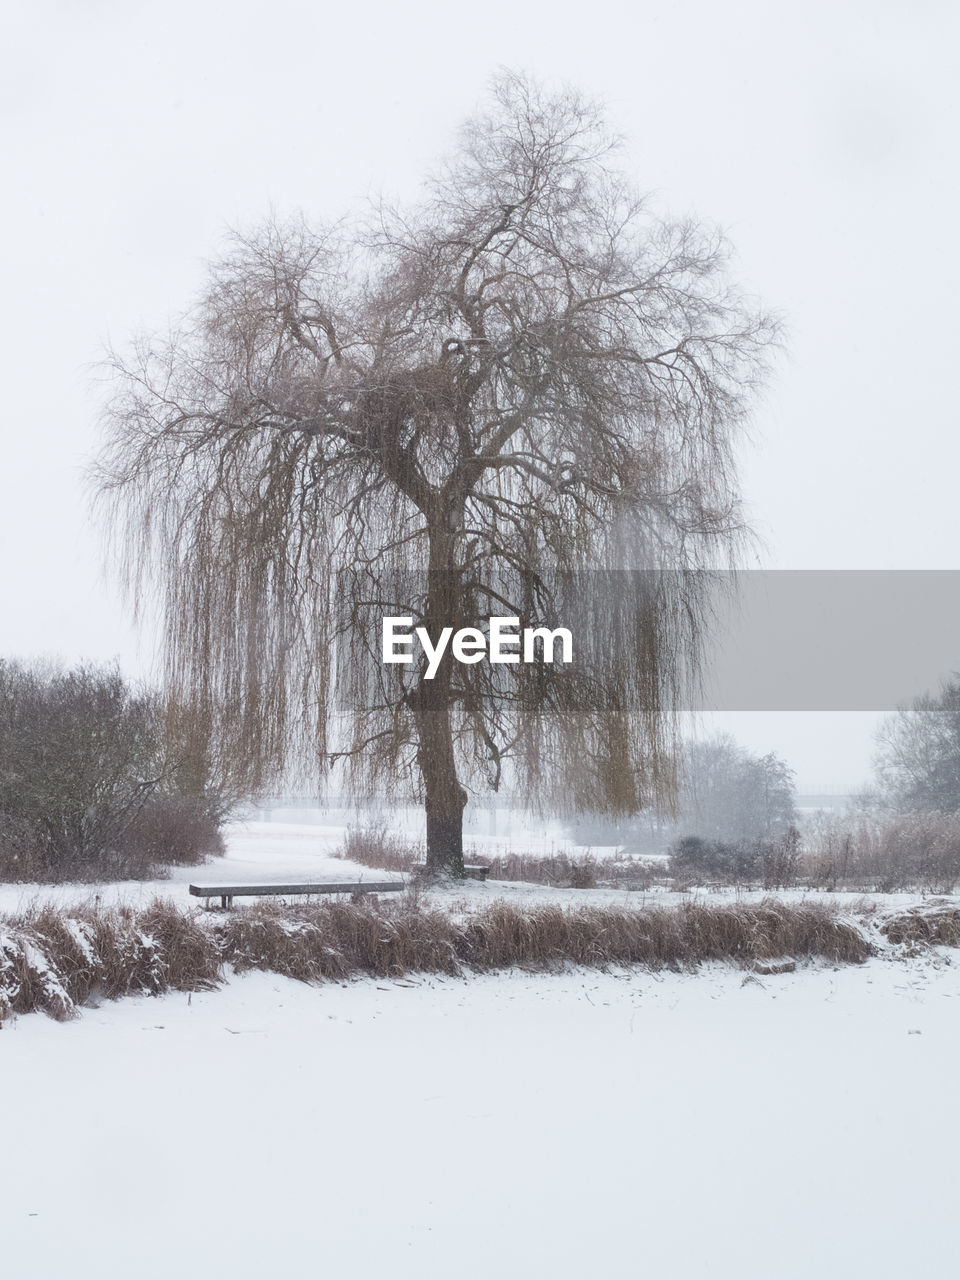 tree, winter, cold temperature, snow, bare tree, nature, cold, tranquility, branch, landscape, tranquil scene, beauty in nature, lone, day, outdoors, no people, scenics, tree trunk, clear sky, sky